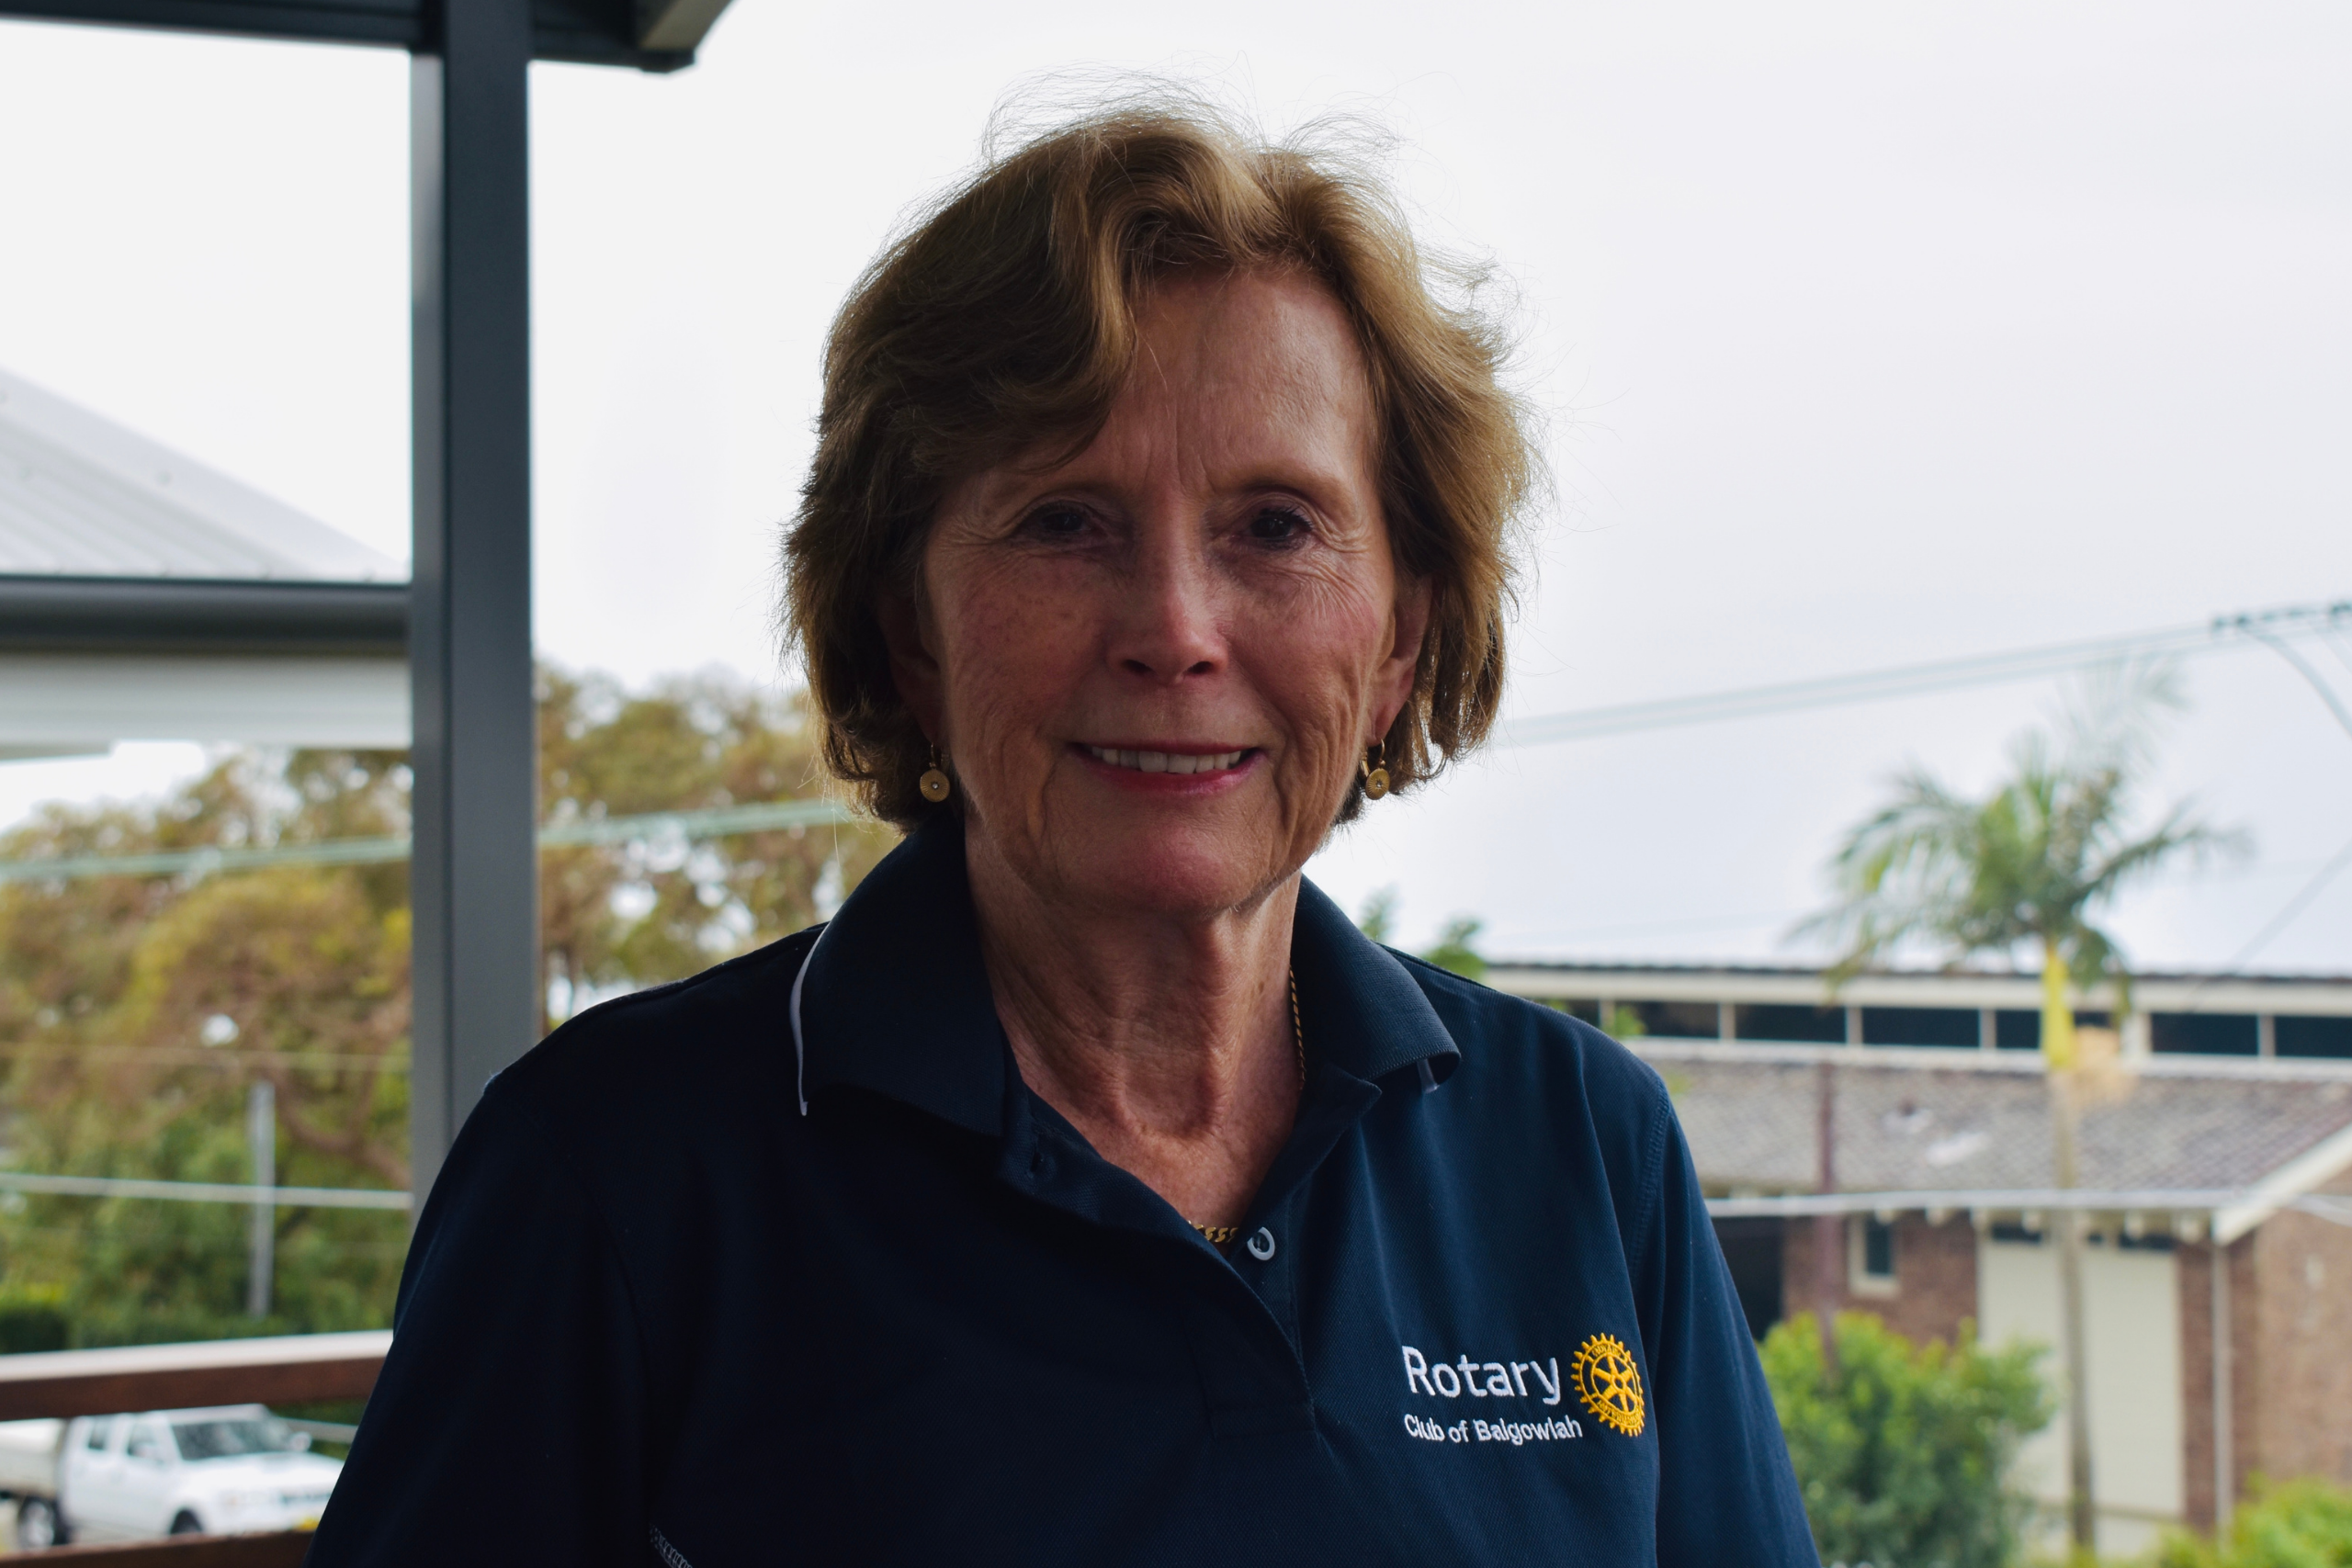 Portrait of Lindy Myers, Volunteer, 69 years old